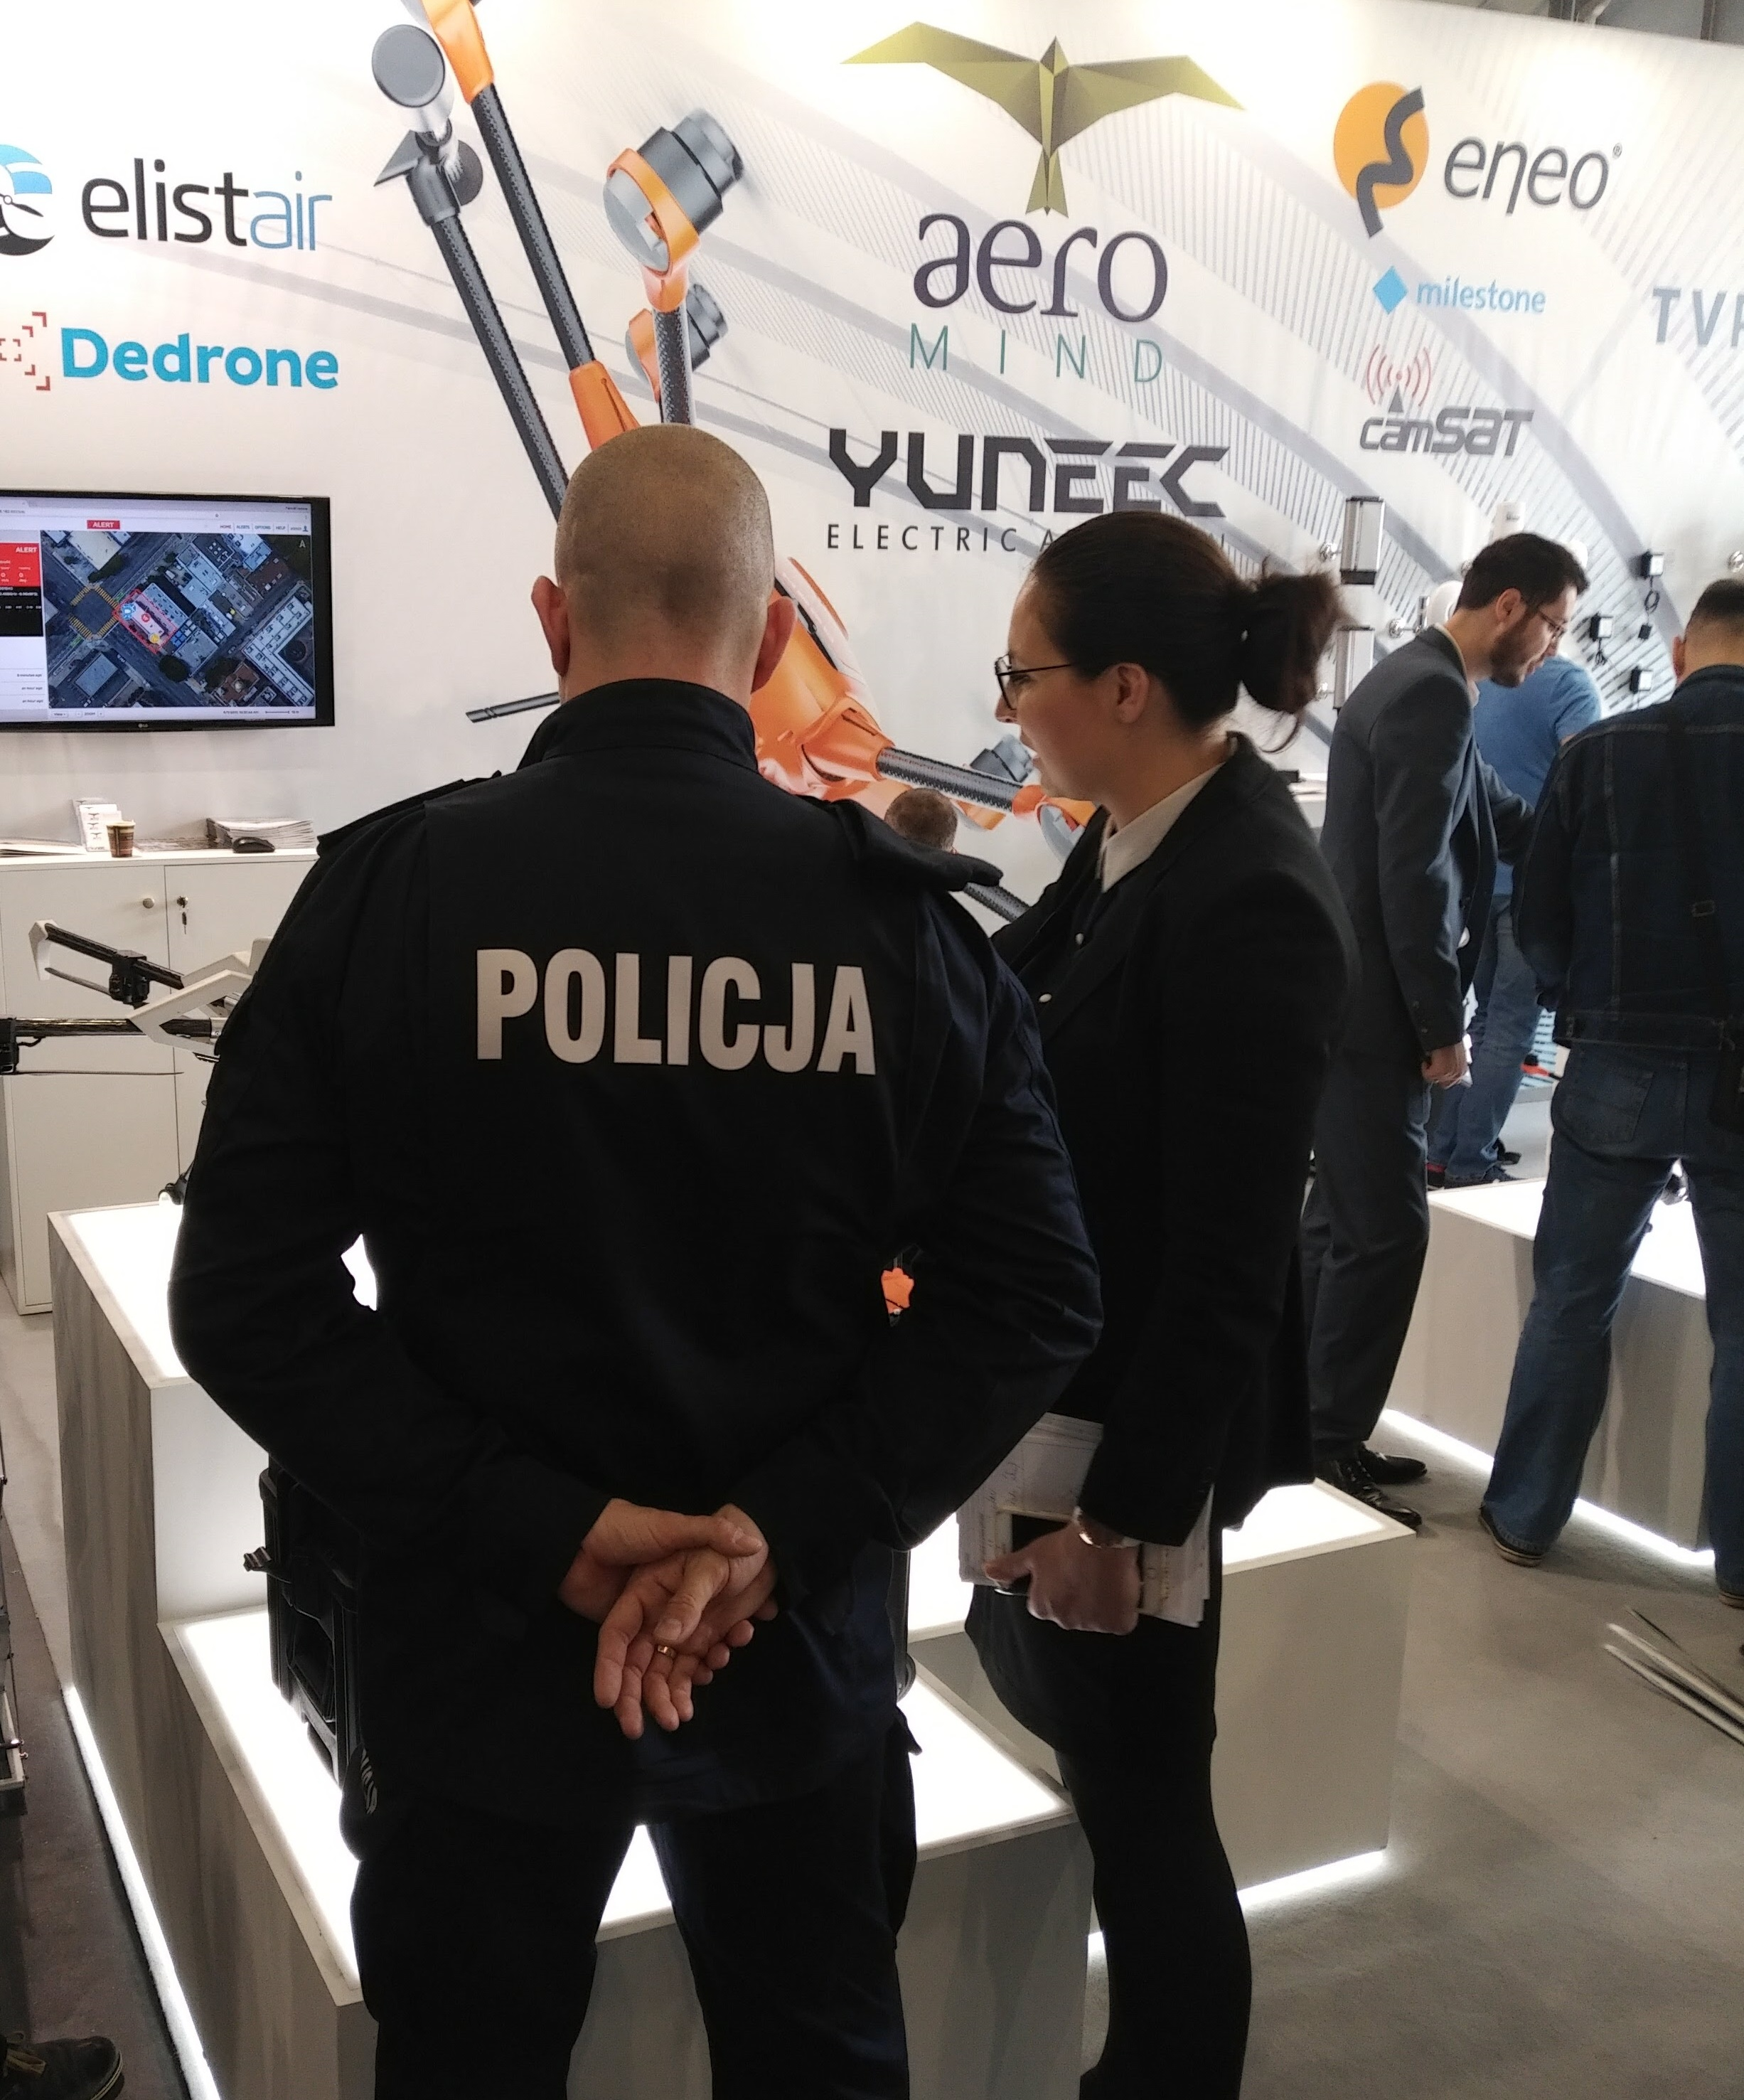 securex_2018_dronezone_aeroMind_3